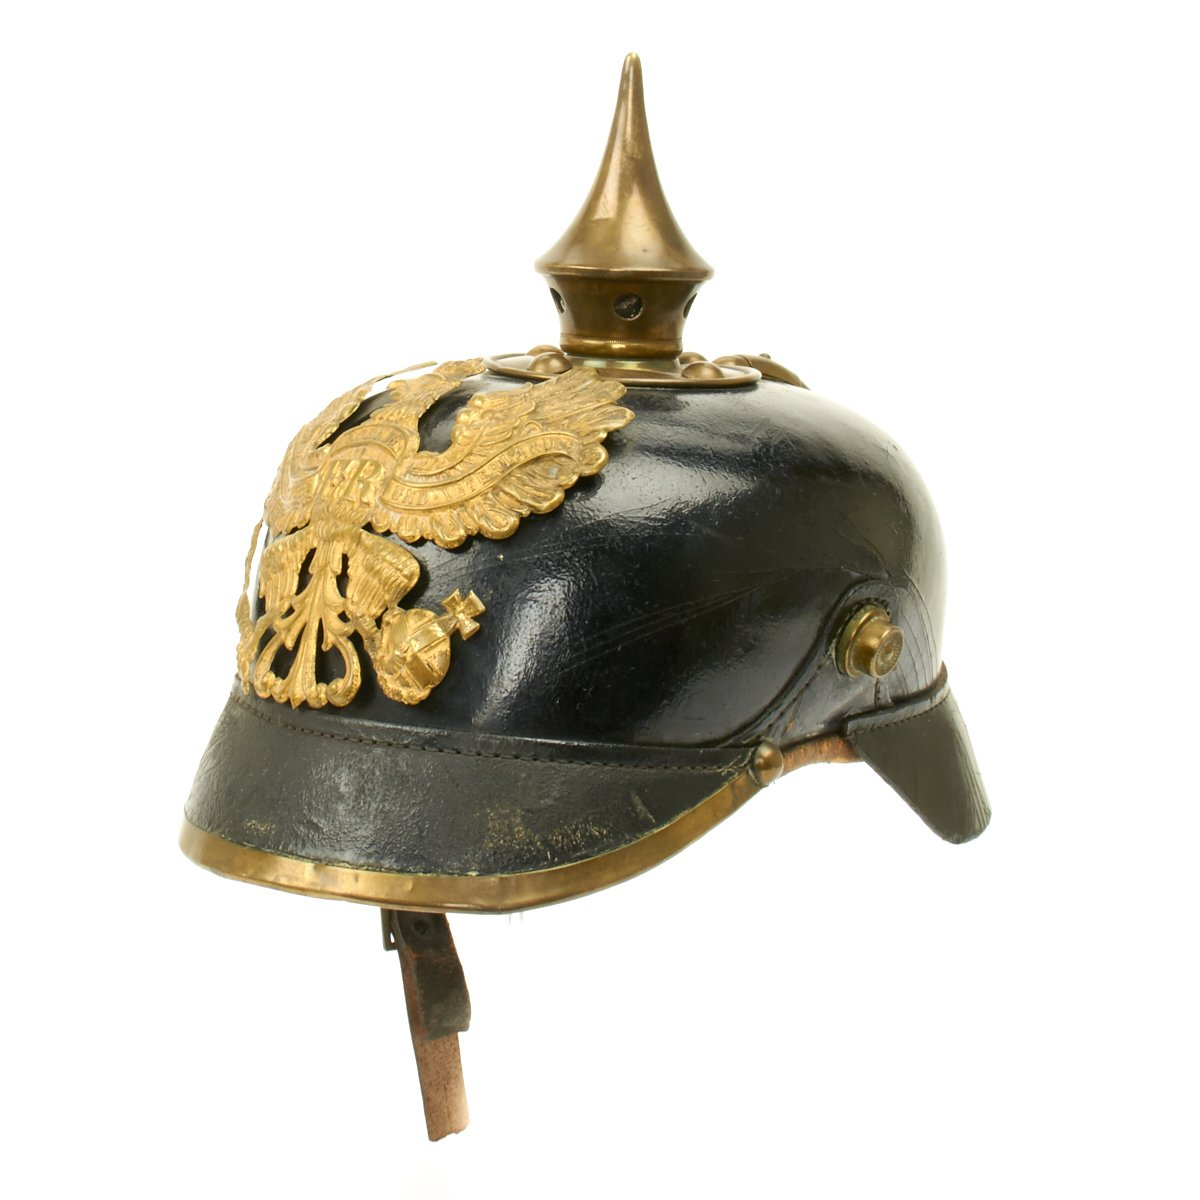 German Eagle Helmet WWII Spike Militaria Spike Helmet of the Prussian Helmet